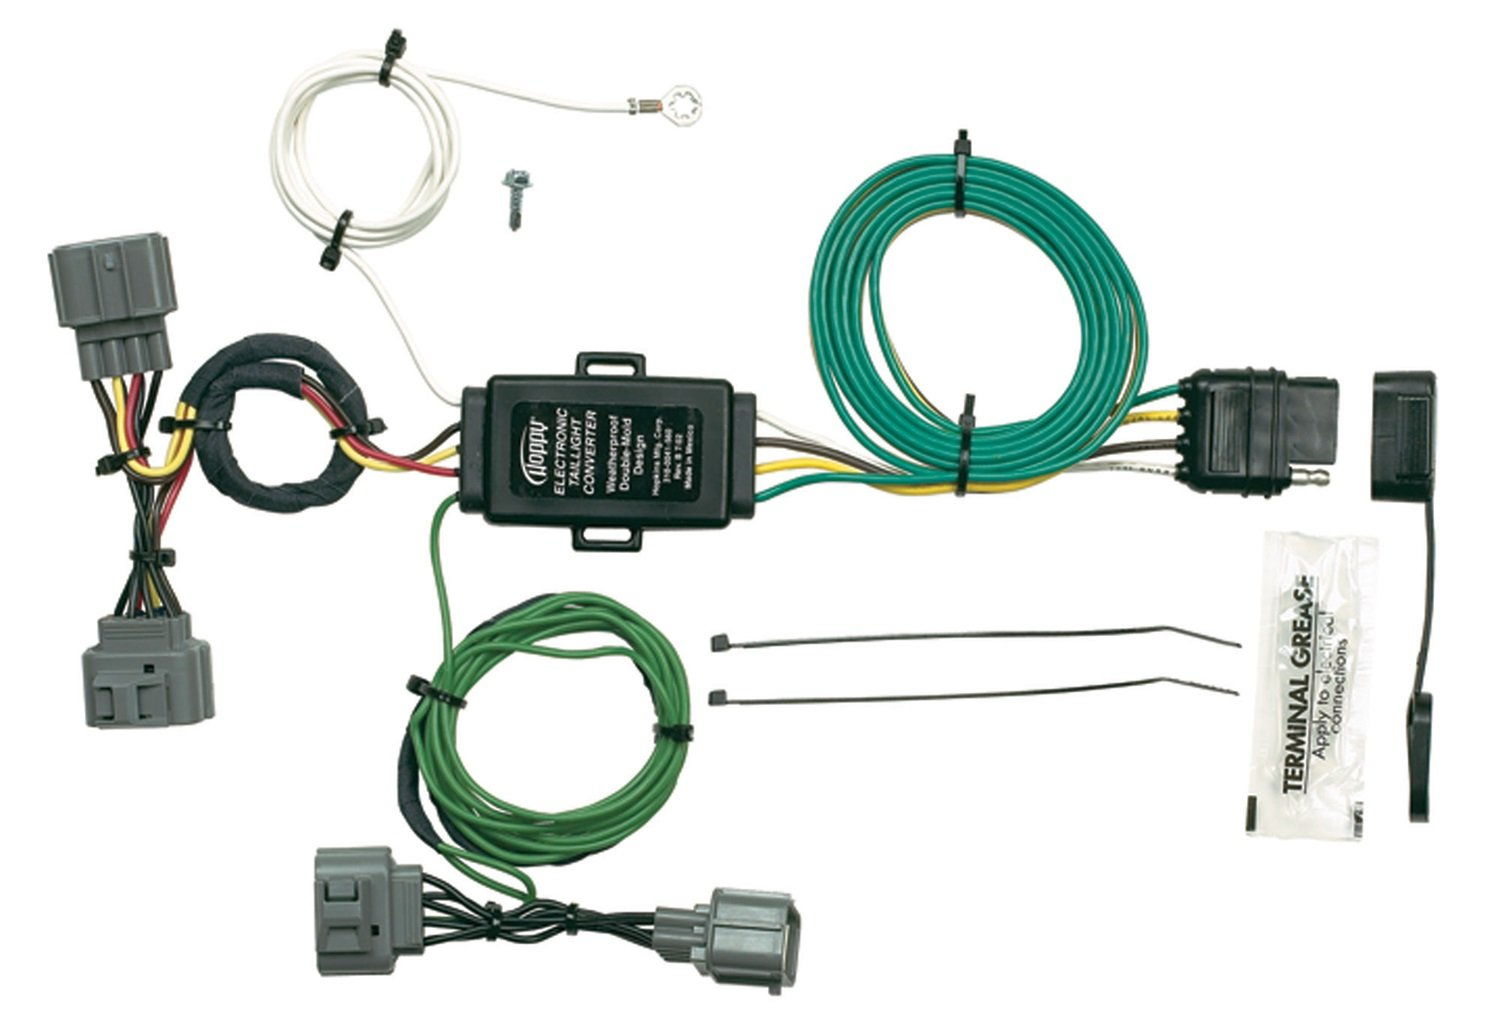 61uhFx0L6RL._SL1500_ amazon com hopkins 43125 plug in simple vehicle wiring kit hopkins 43355 wiring harness at gsmx.co